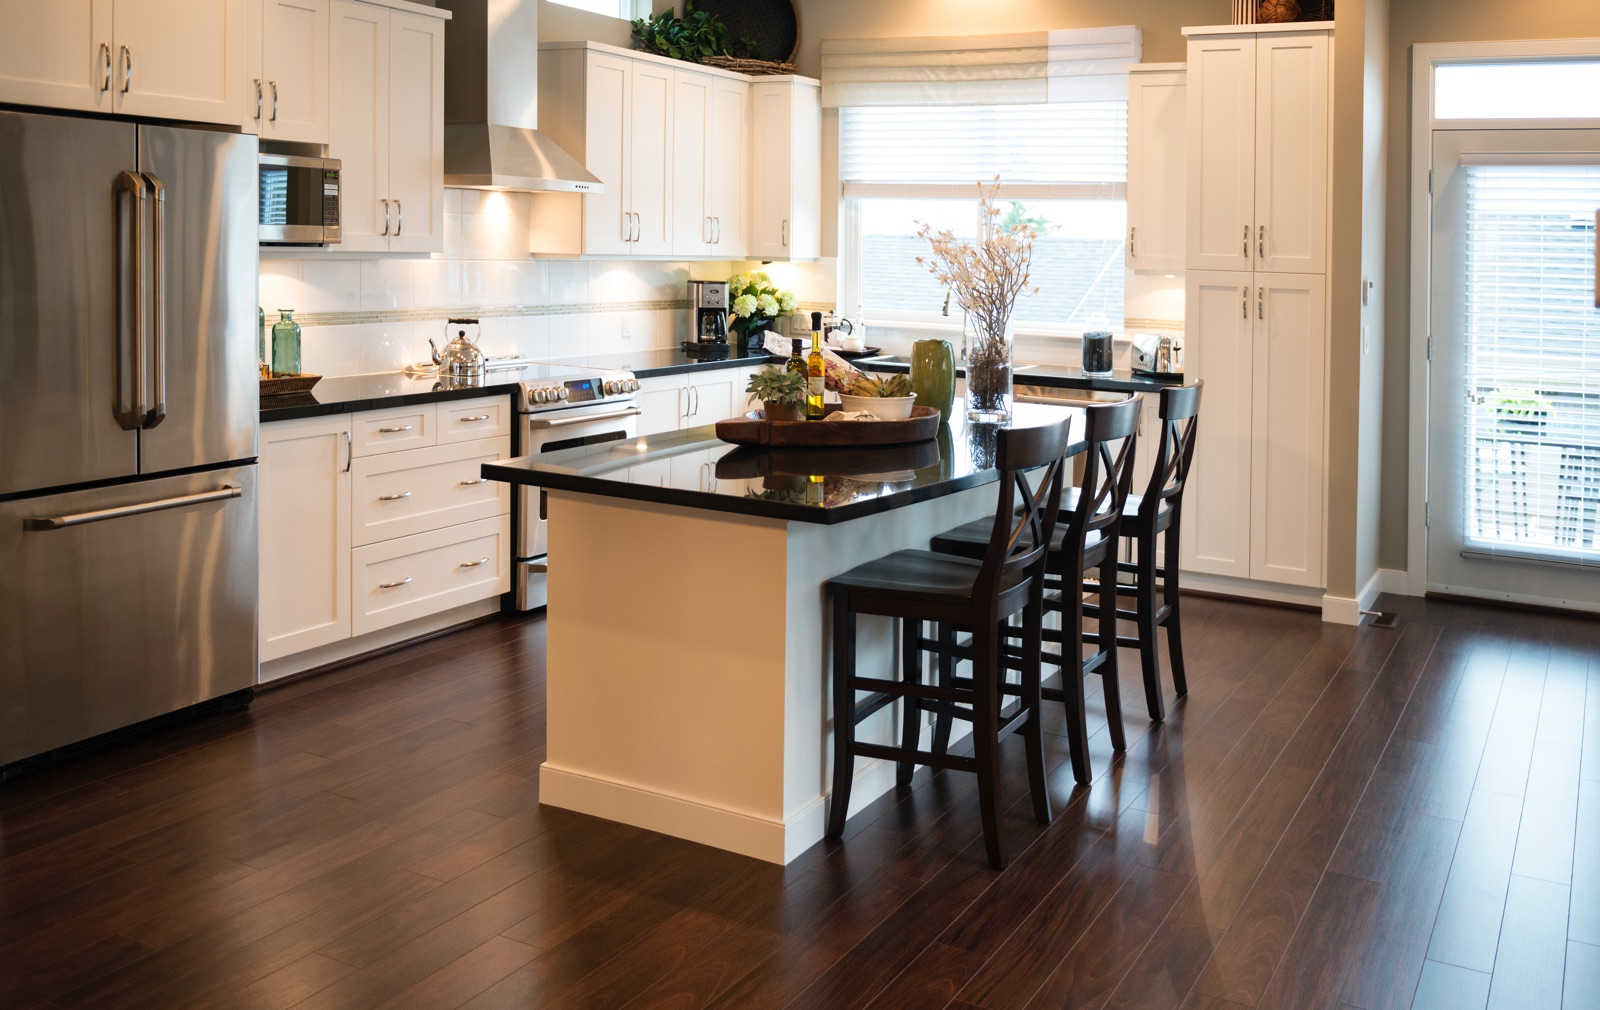 Kitchen with wooden floors and island counter